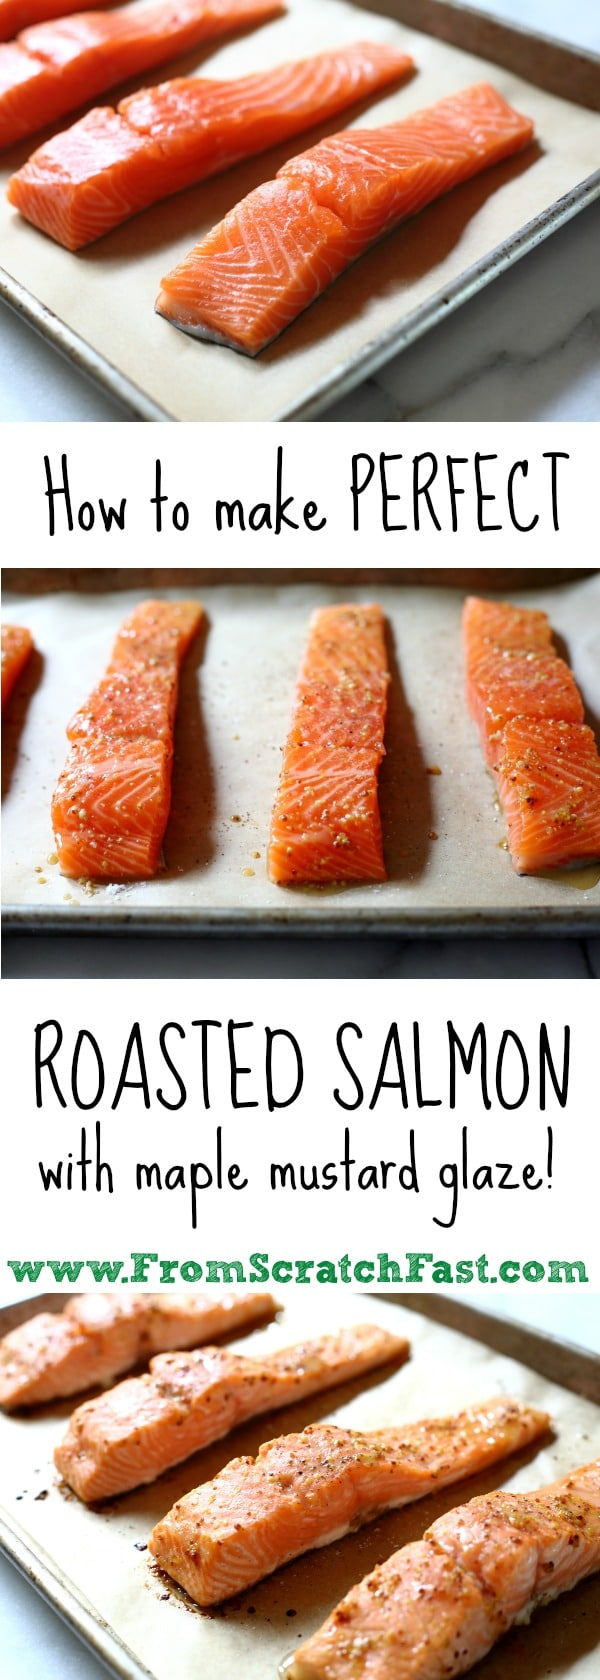 Perfectly cooked roasted salmon is one of the quickest and easiest of weeknight meals, and this maple-glazed version will rock your world.